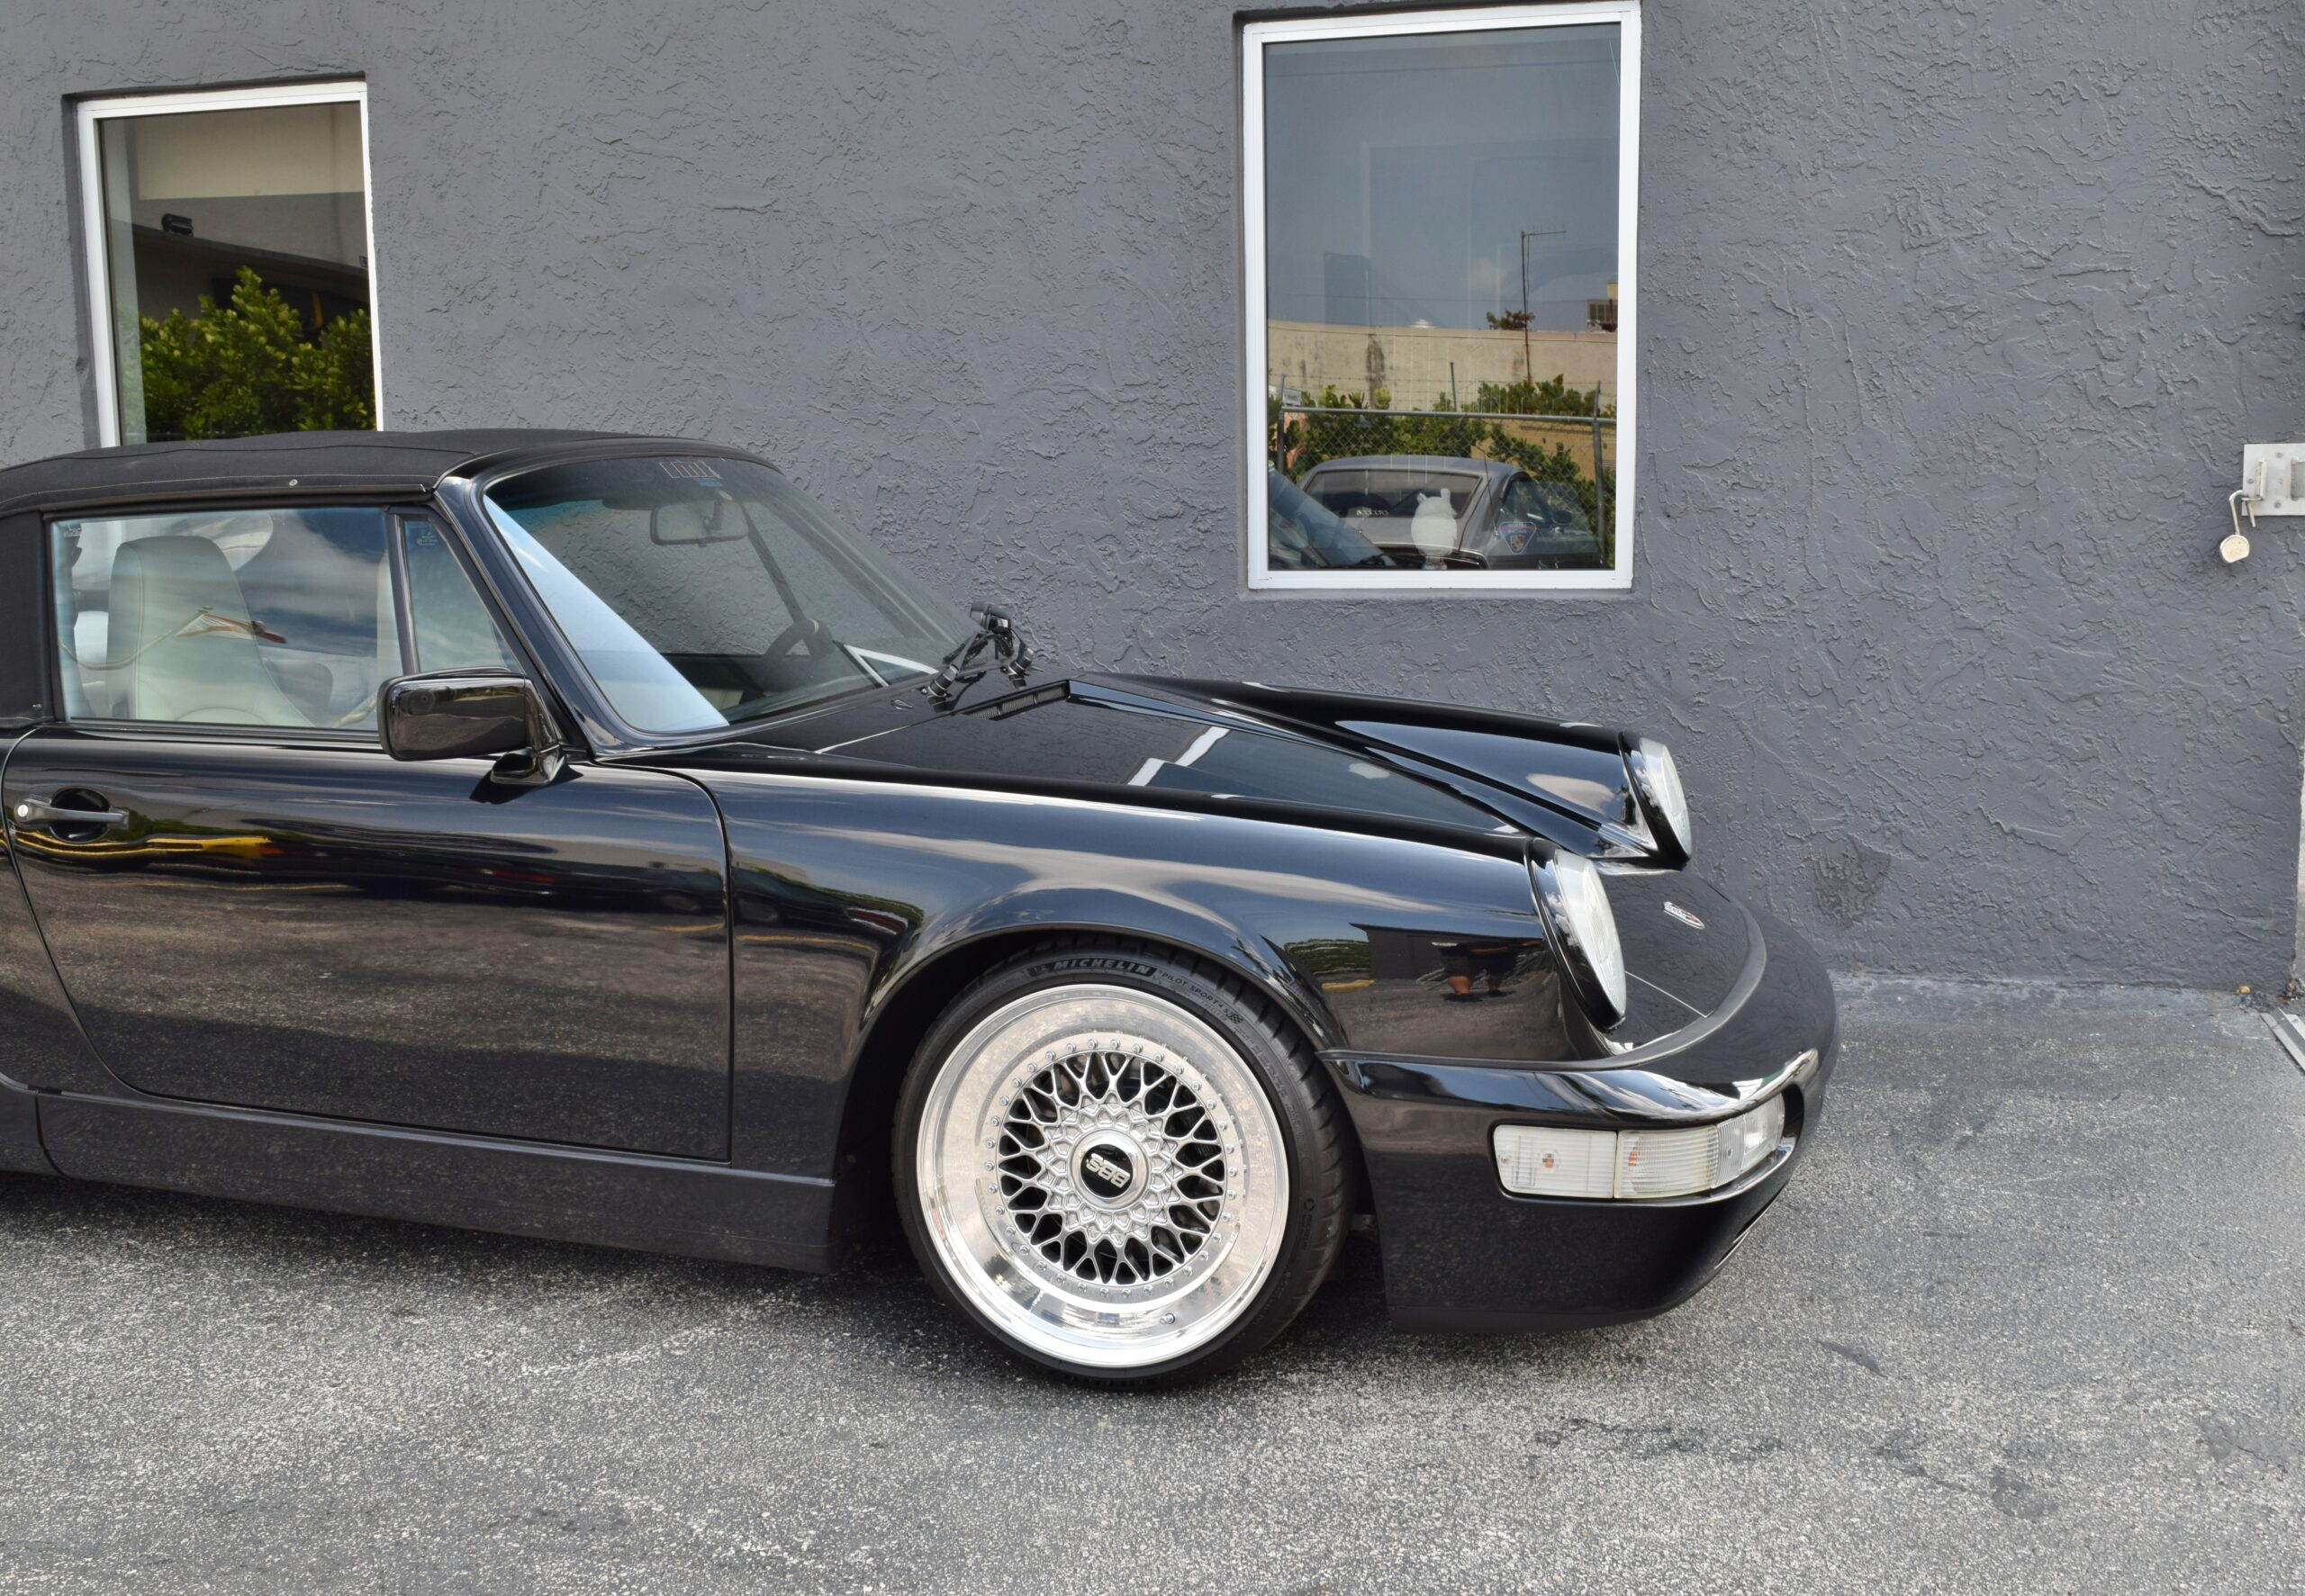 1990 Porsche 911 964 Carrera 2 3.8L Build -Show Car-Custom BBS RS-Full Service History- Over $40,000 Invested!!